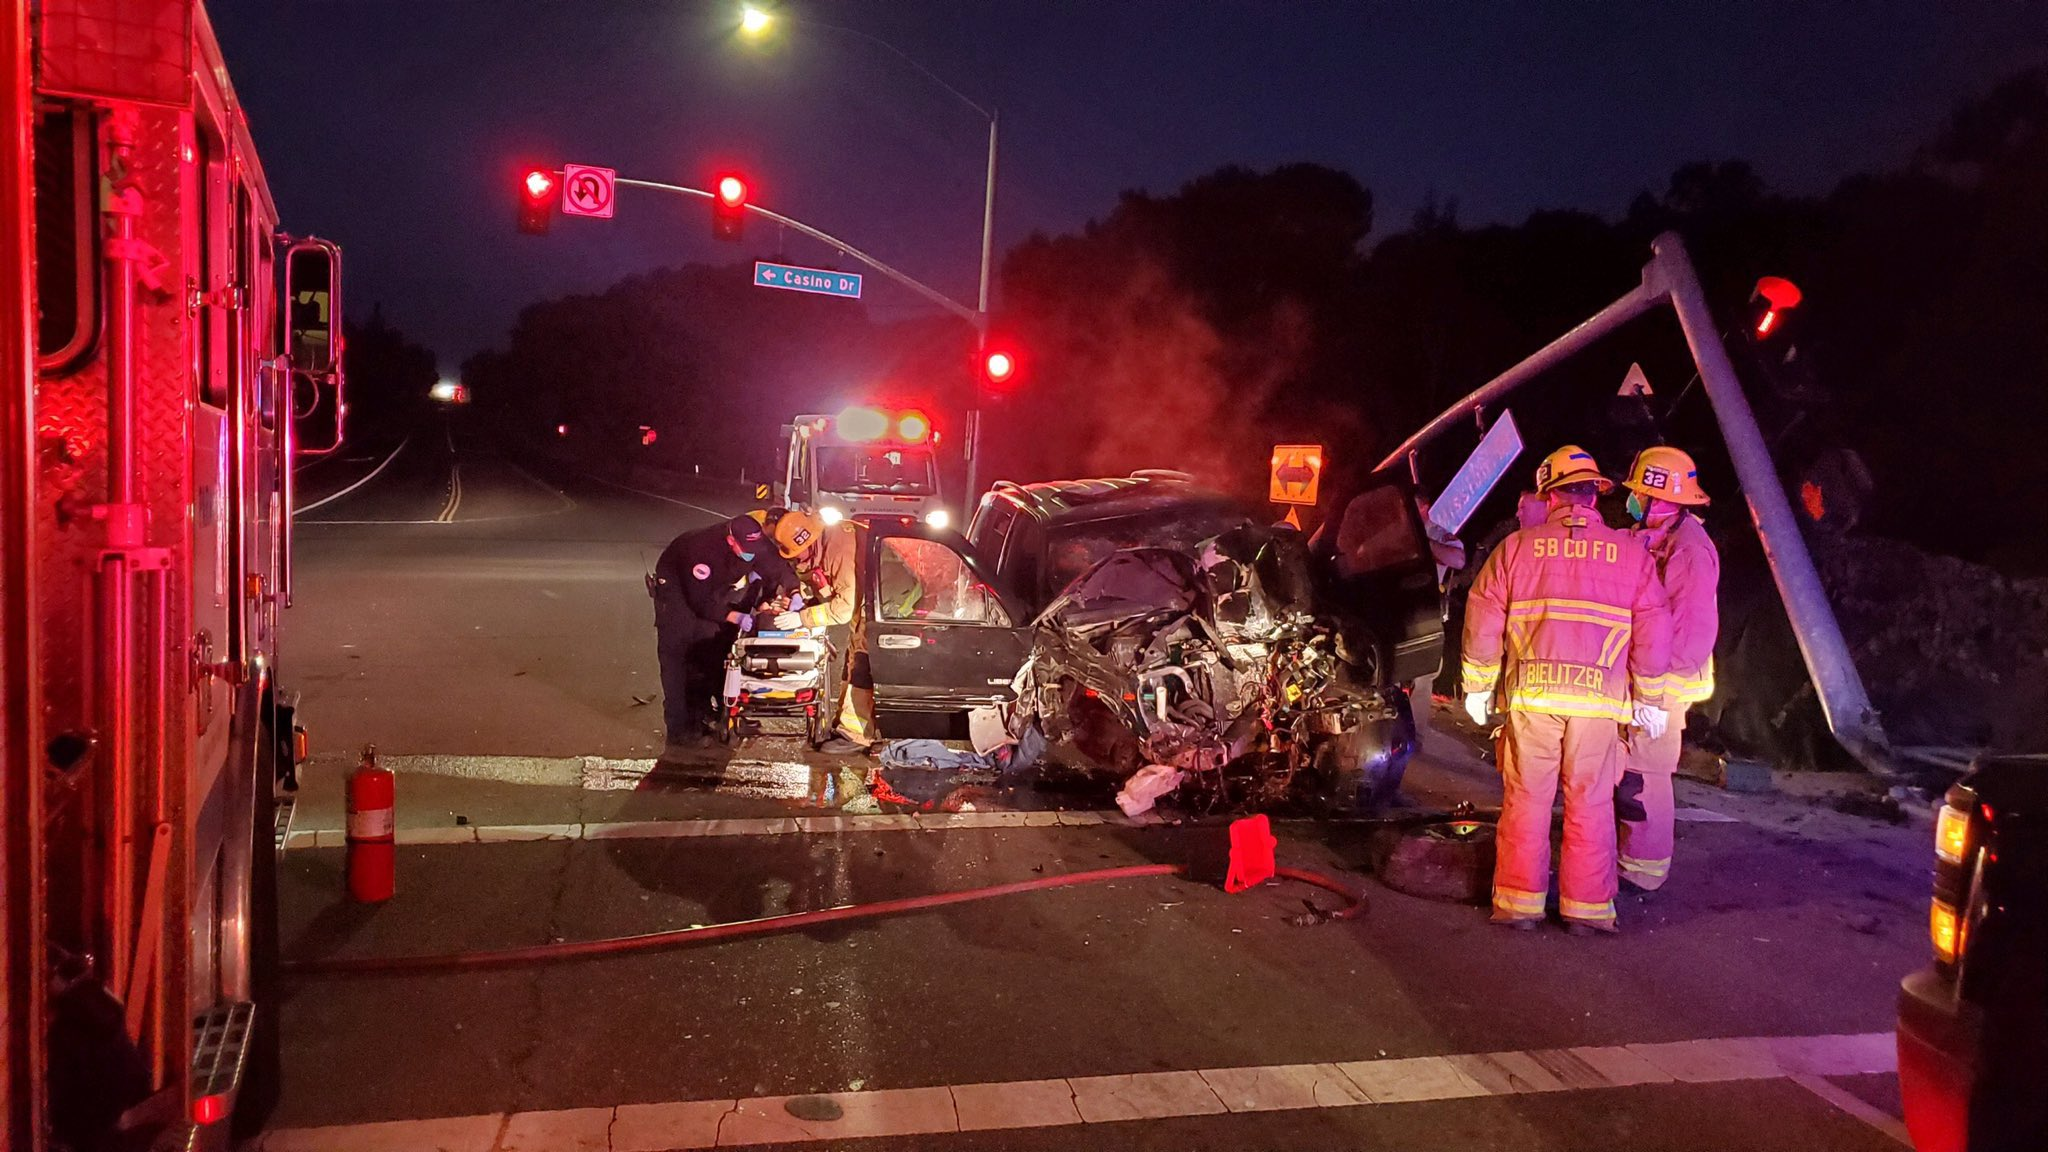 Two hospitalized after single-vehicle crash near Chumash Casino, fire officials say